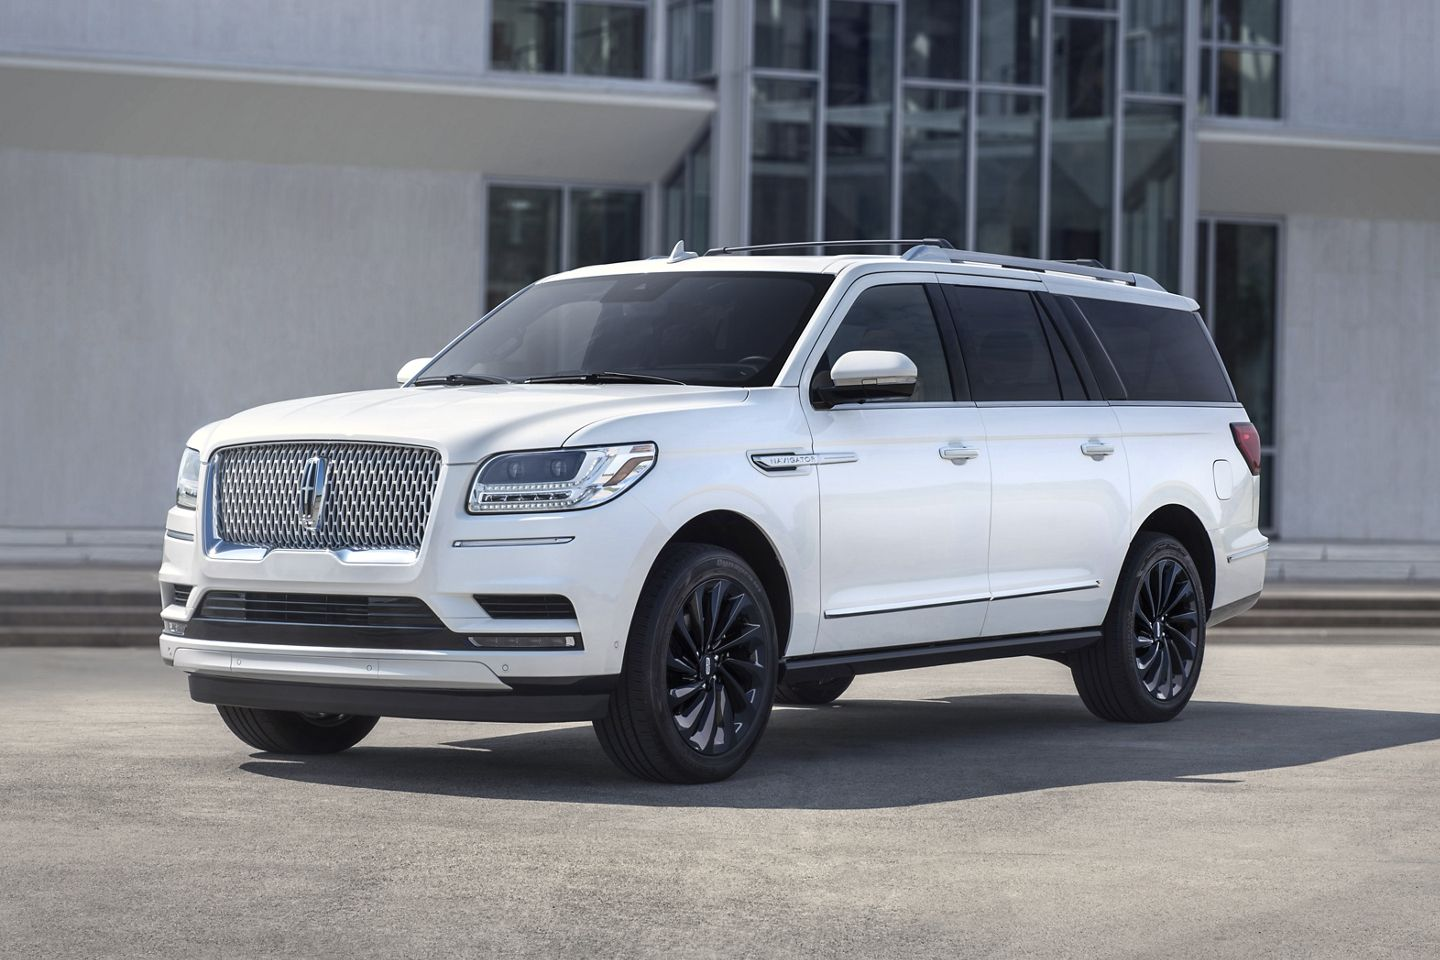 Pin by Raj Singh on Vehicles in 2020 Lincoln navigator